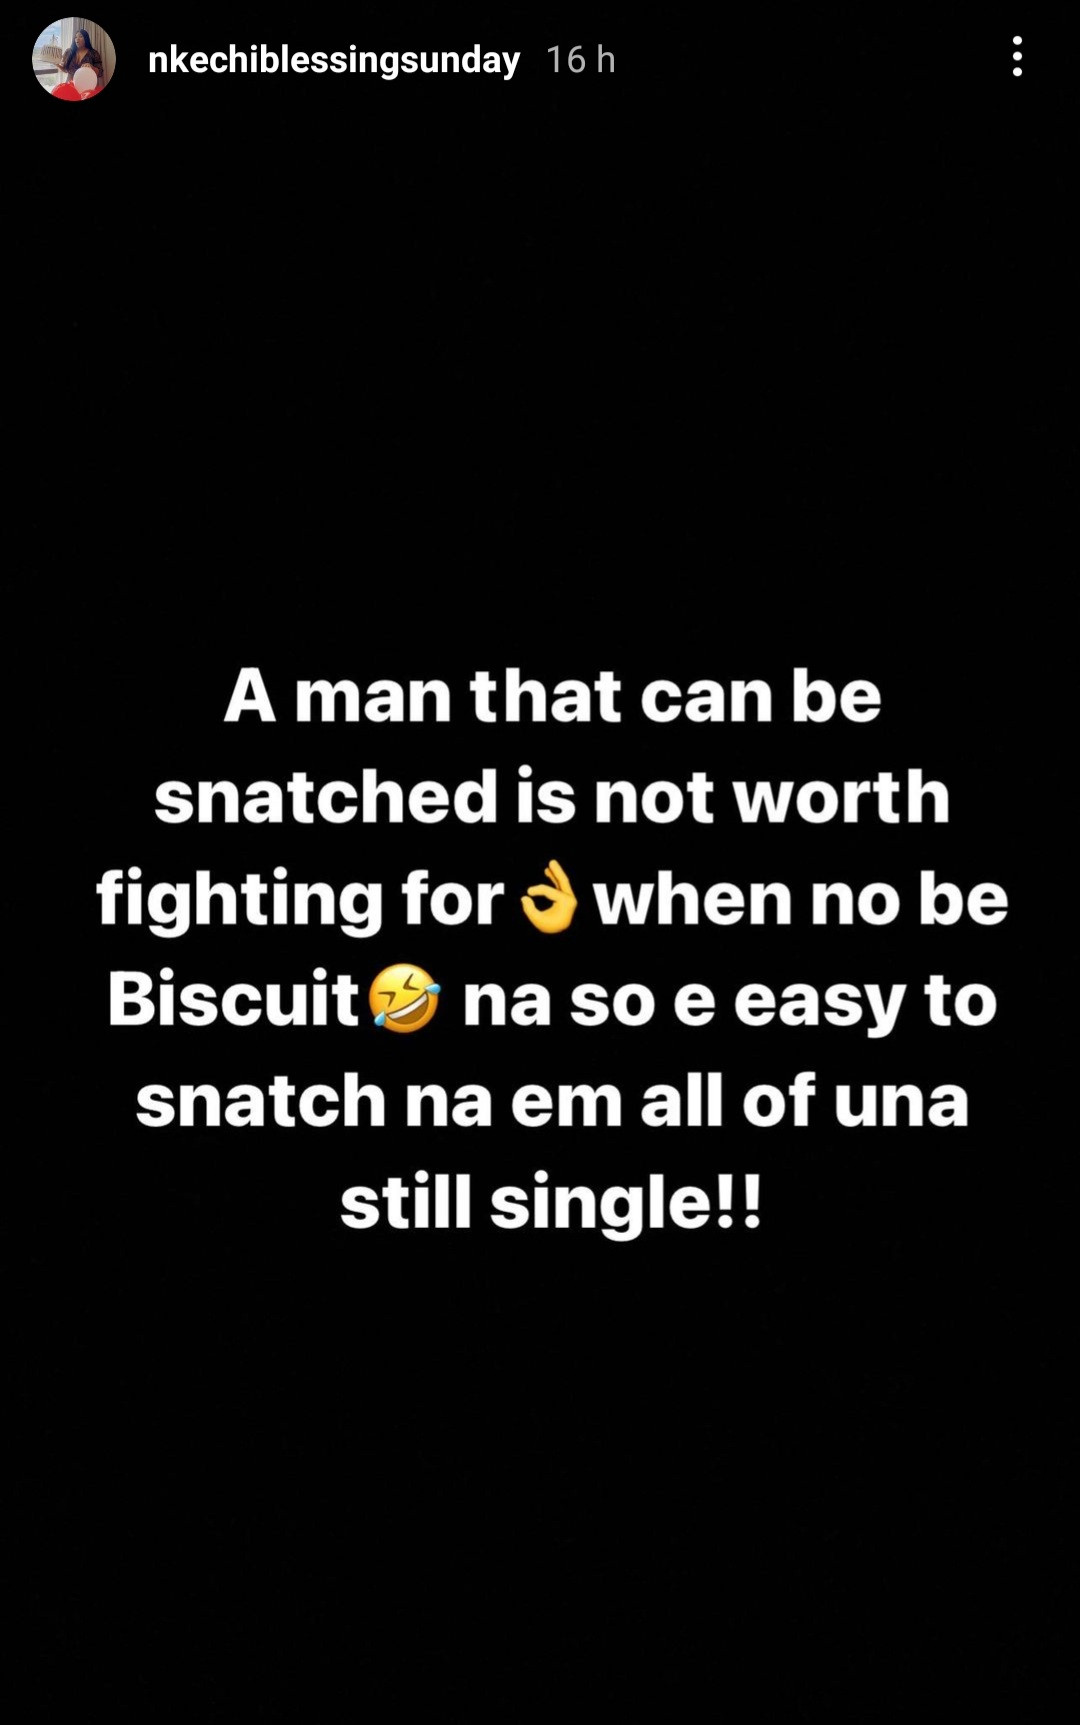 60c46613197b7 - ''A man that can be snatched is not worth fighting for''- actress Nkechi Blessing Sunday